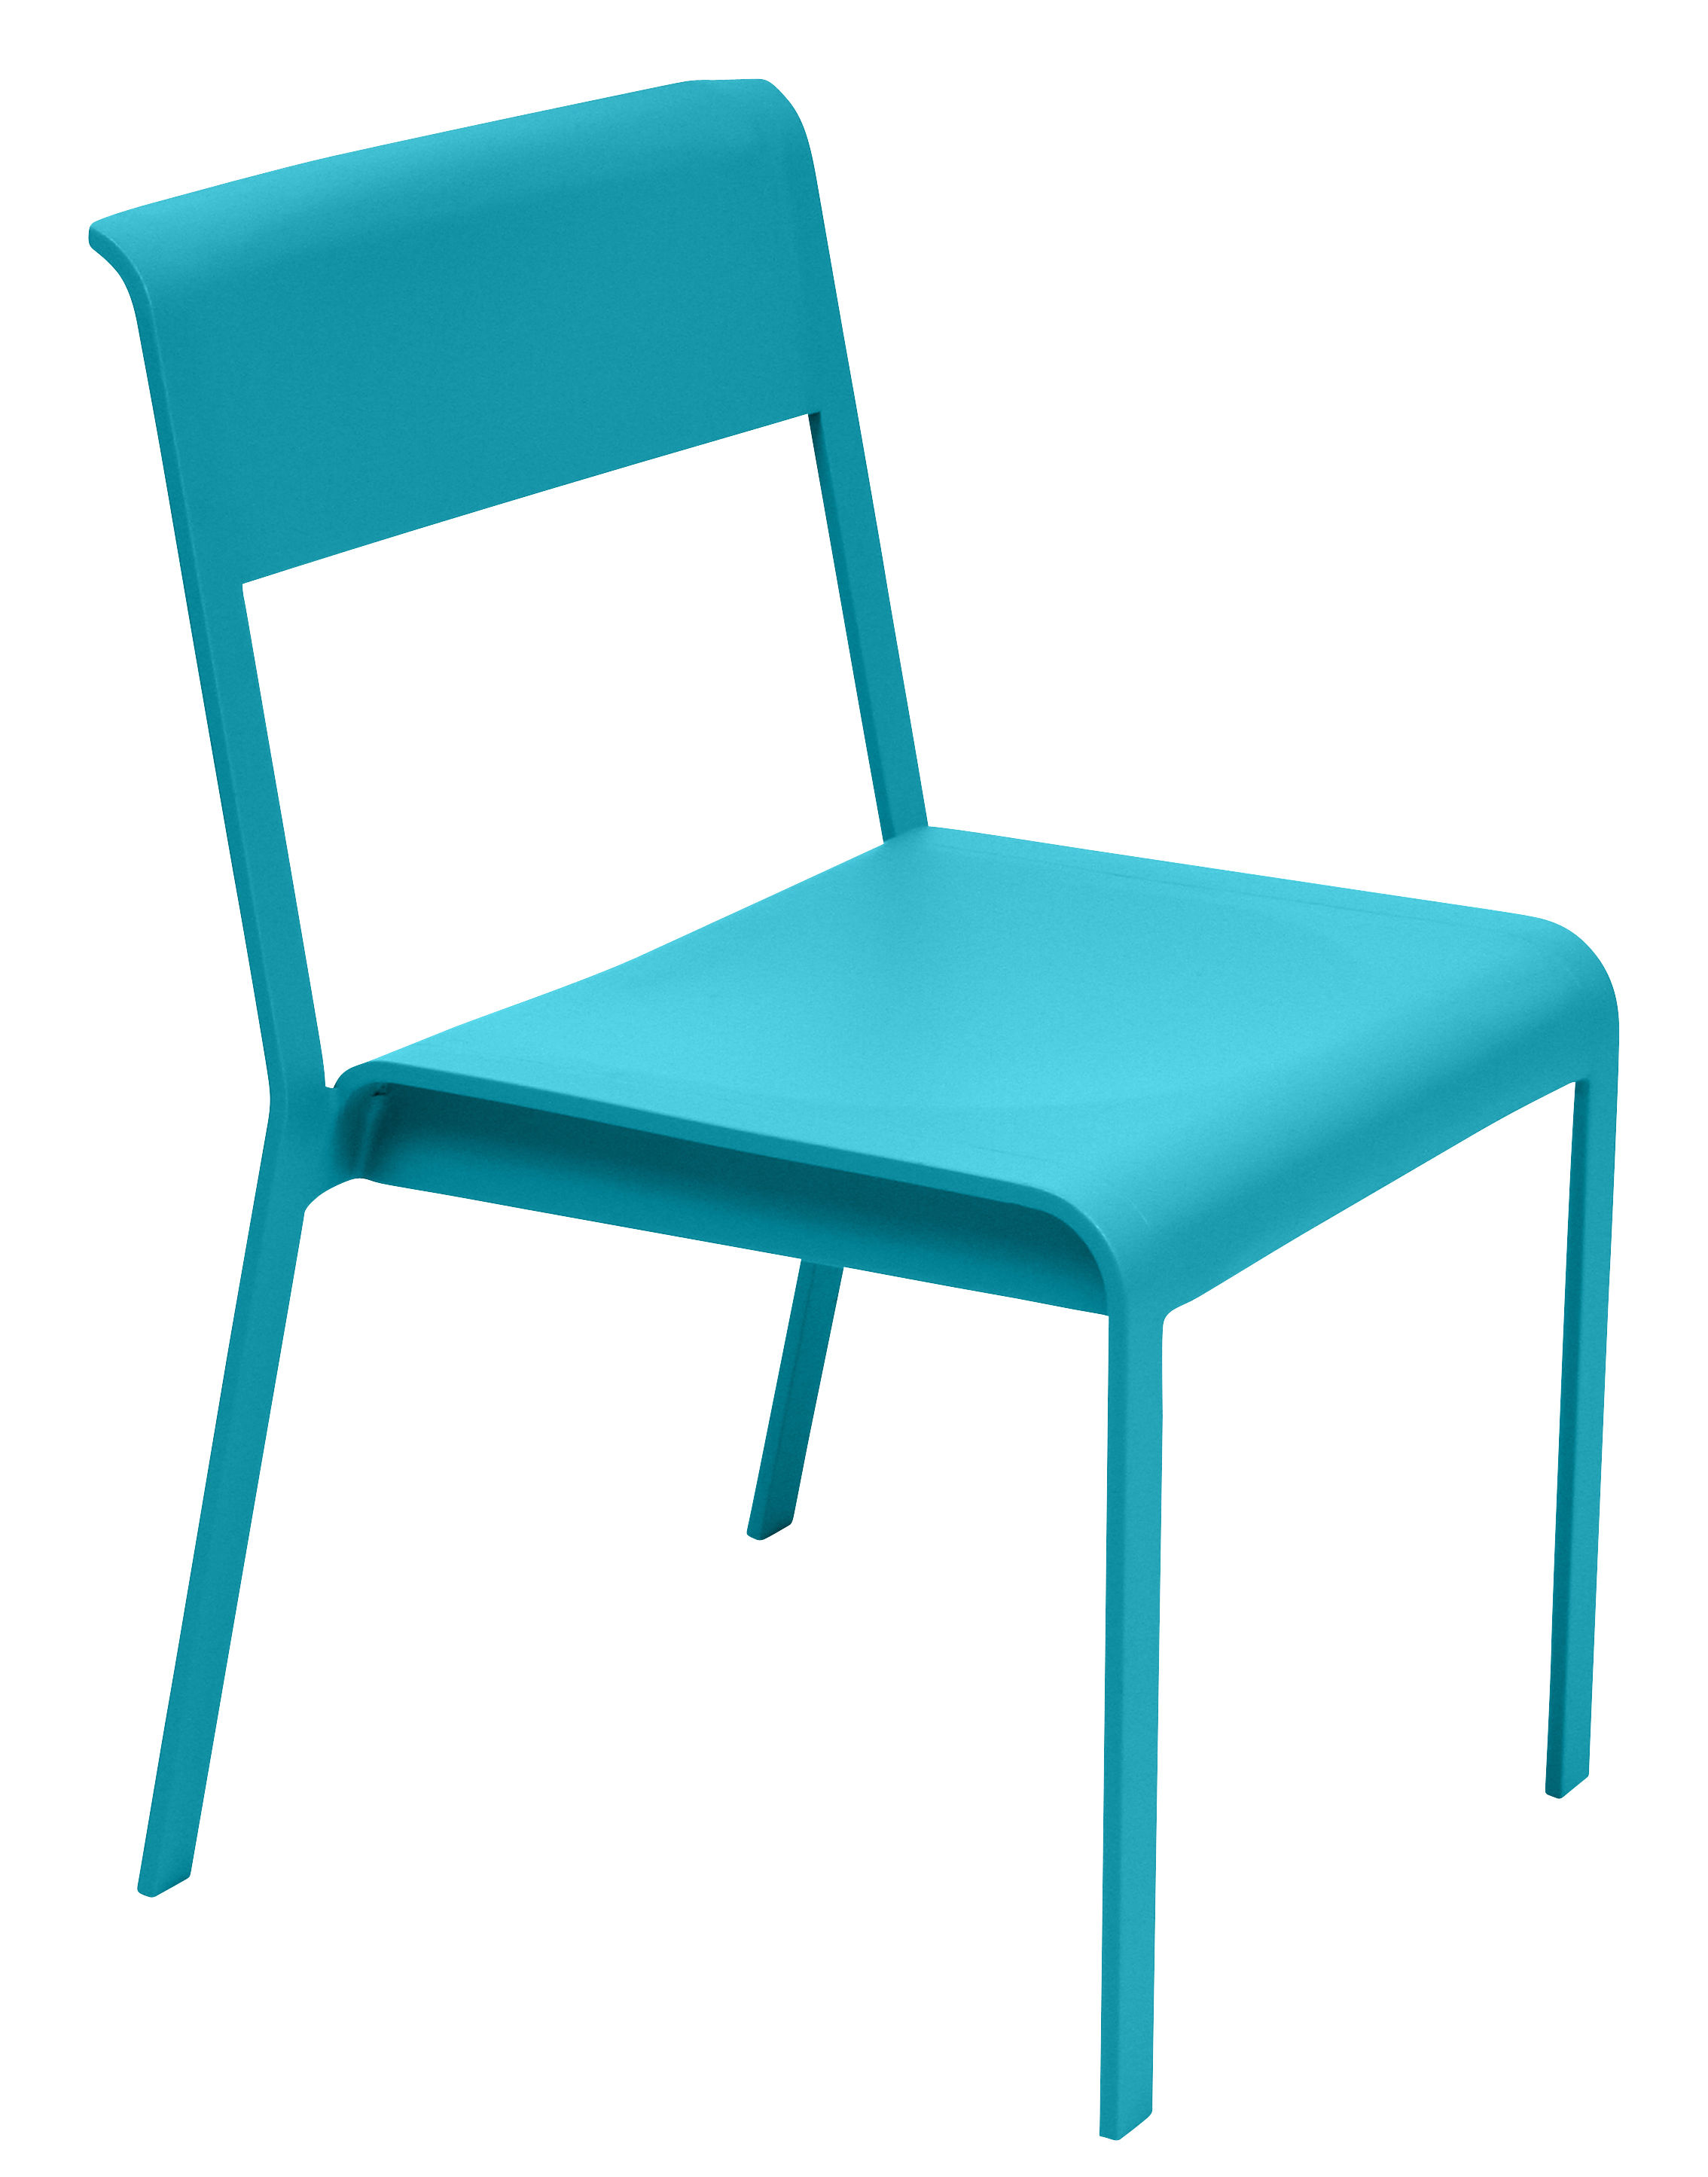 Chaise Empilable Bellevie Metal Bleu Turquoise Fermob Made In